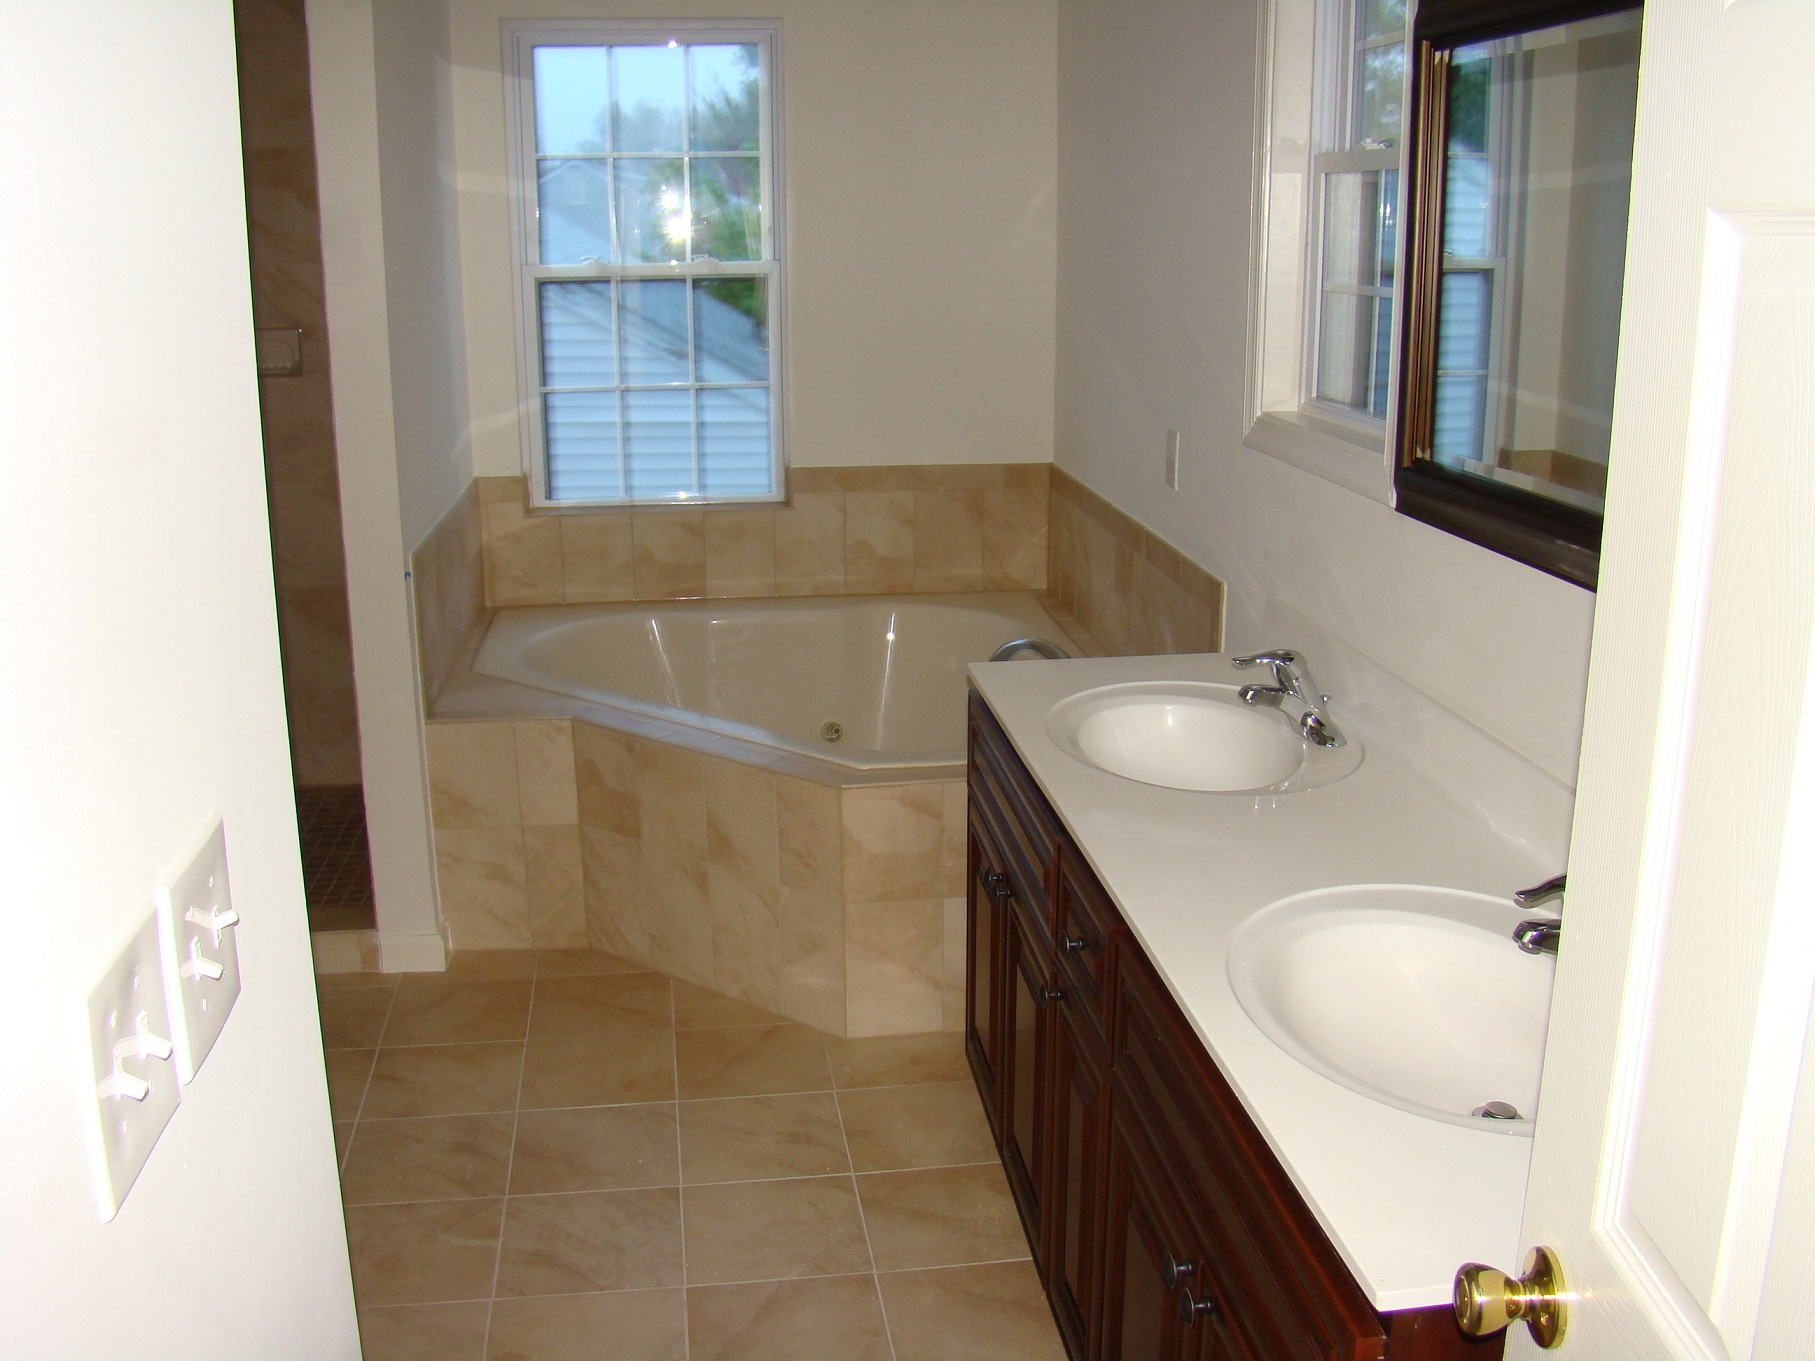 Arlington virginia home remodeling contractor elite contractor services Bathroom remodeling arlington va